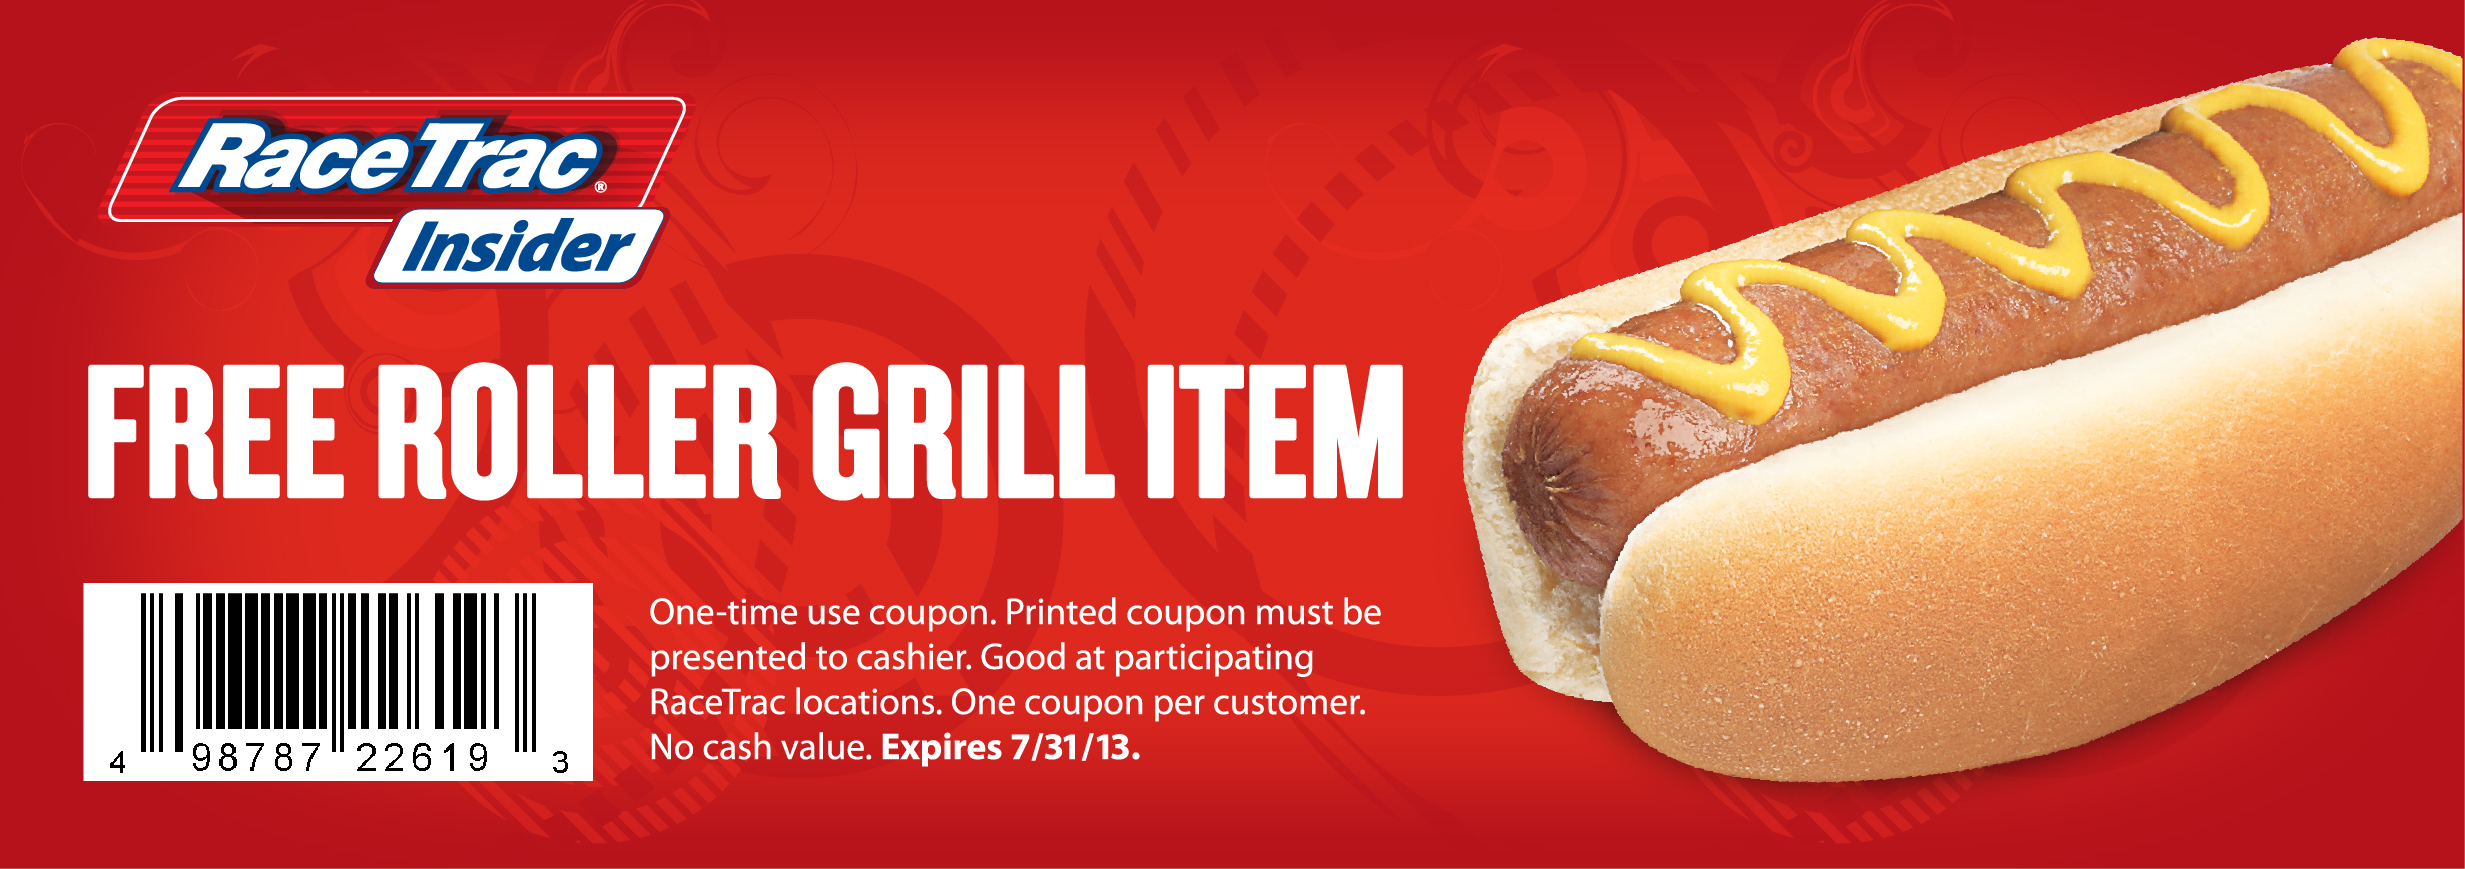 FREE roller grill item at Race...